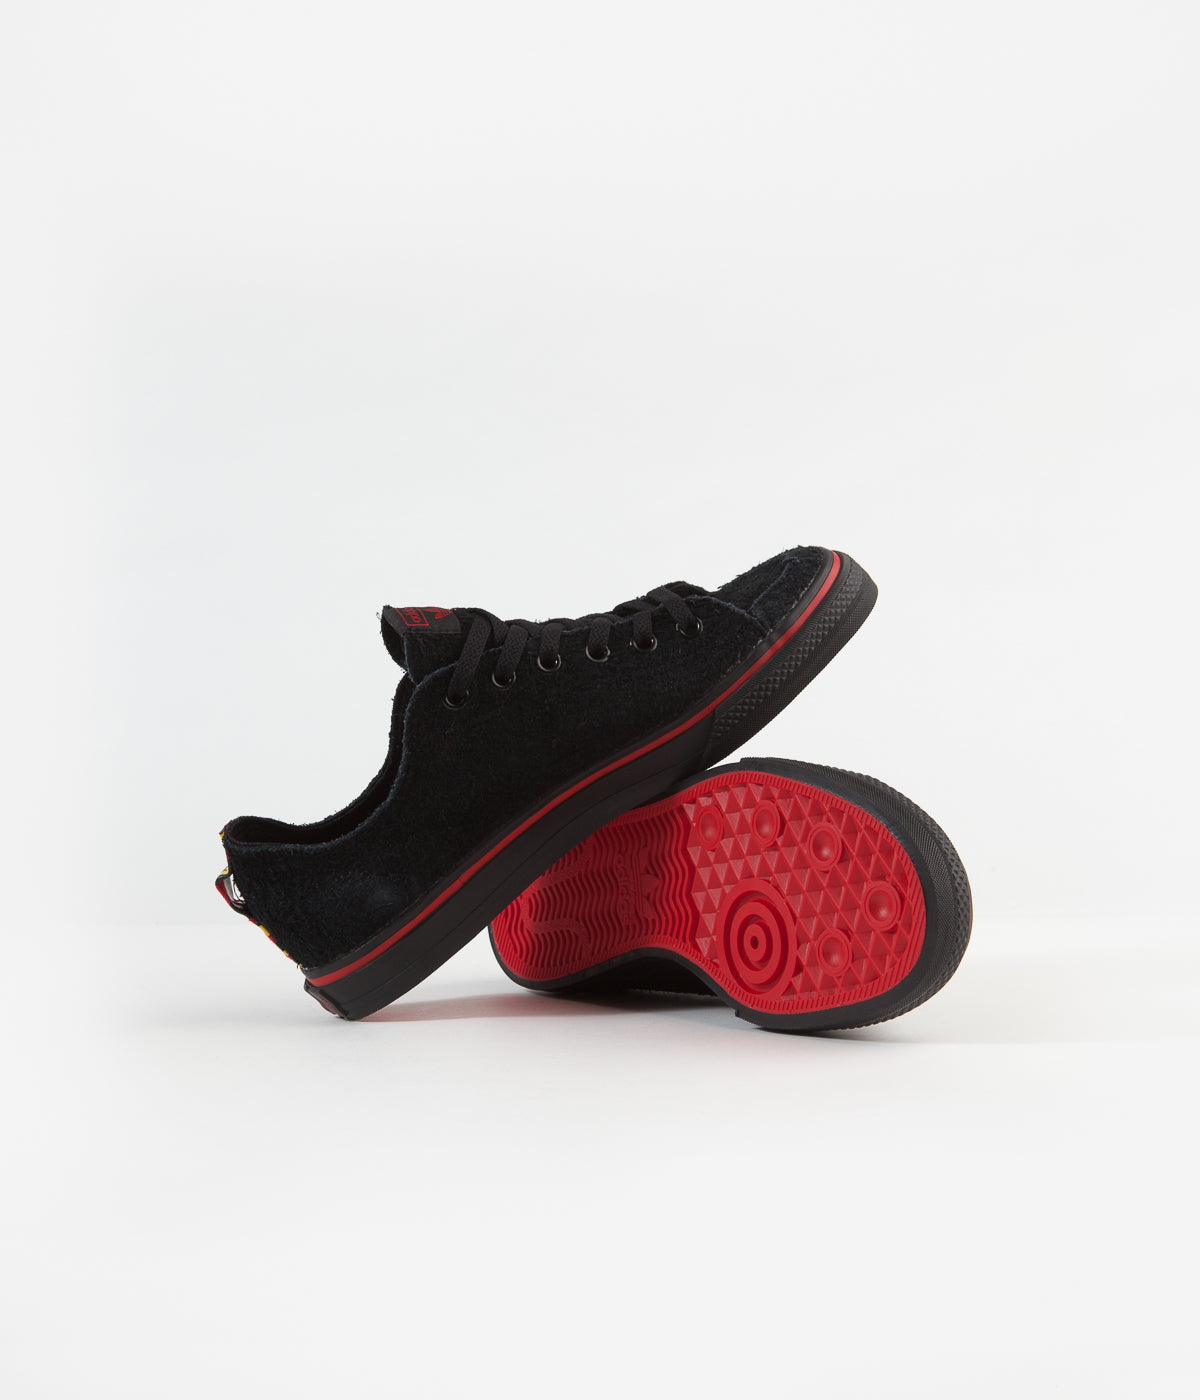 Adidas Nizza RF 'Na-Kel' Shoes - Core Black / Scarlet / White